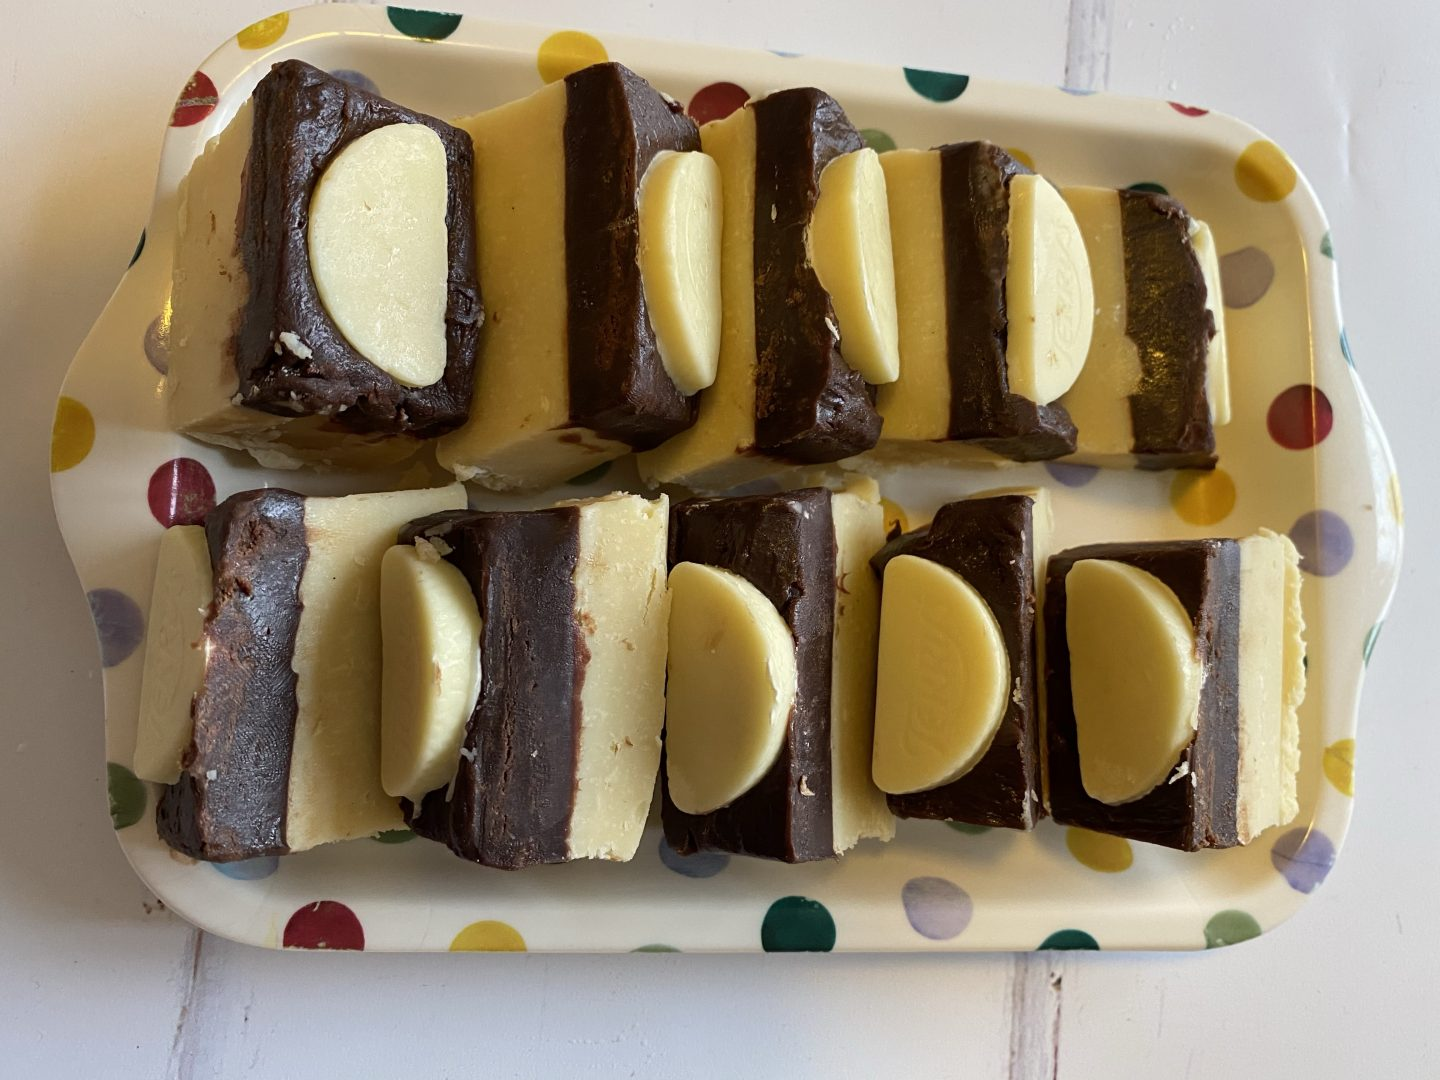 Terry's chocolate orange fudge recipe with fudge pieces sat on a plate